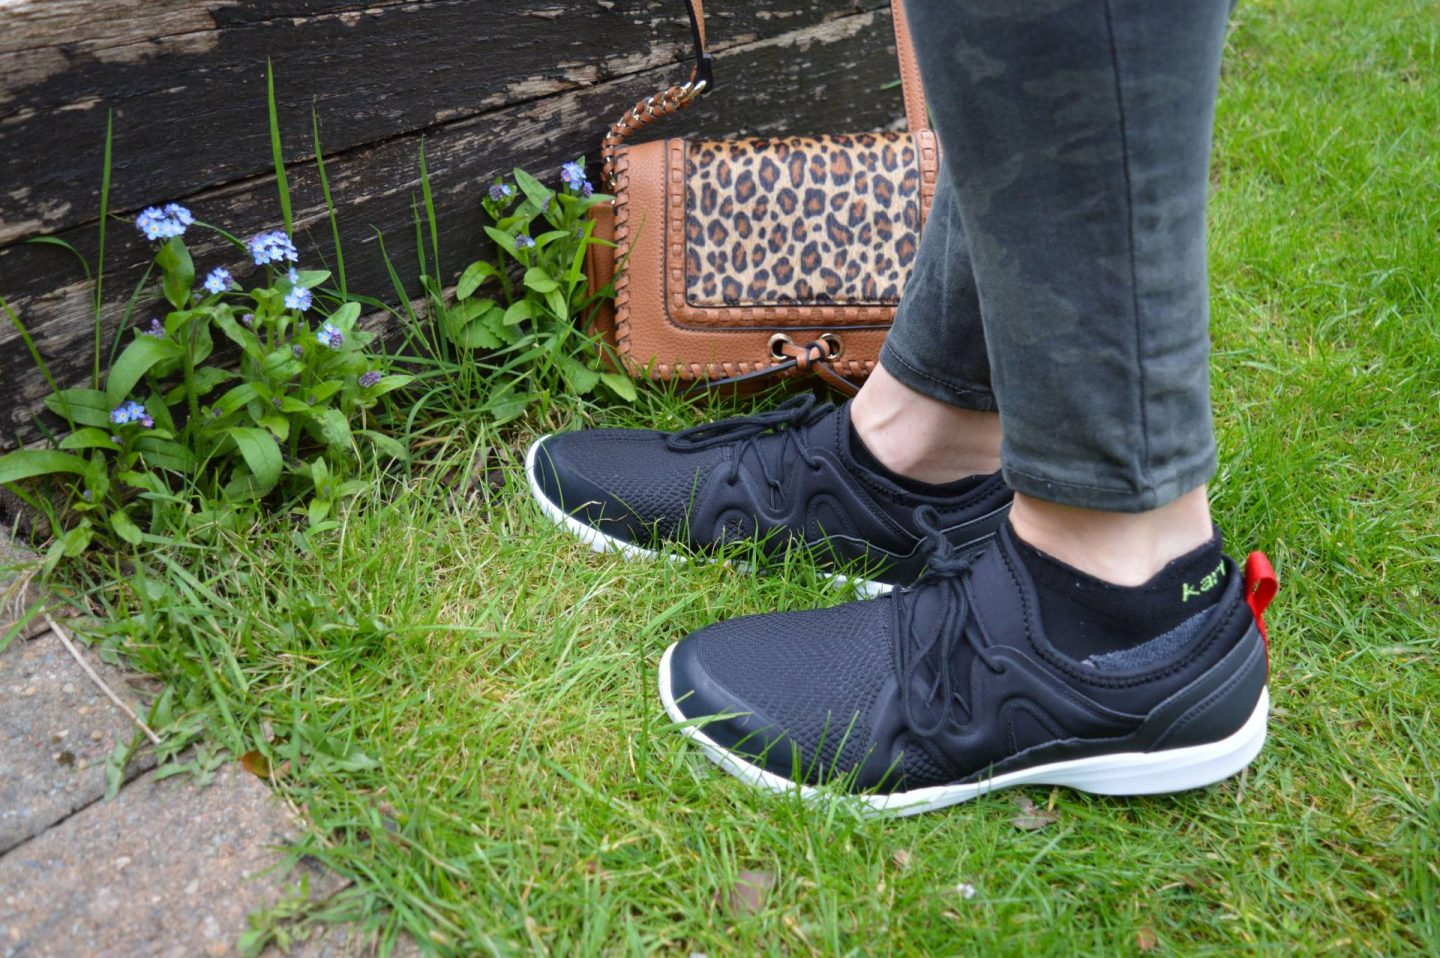 Lace, camo and Leopard Print, Vionic Storm trainers